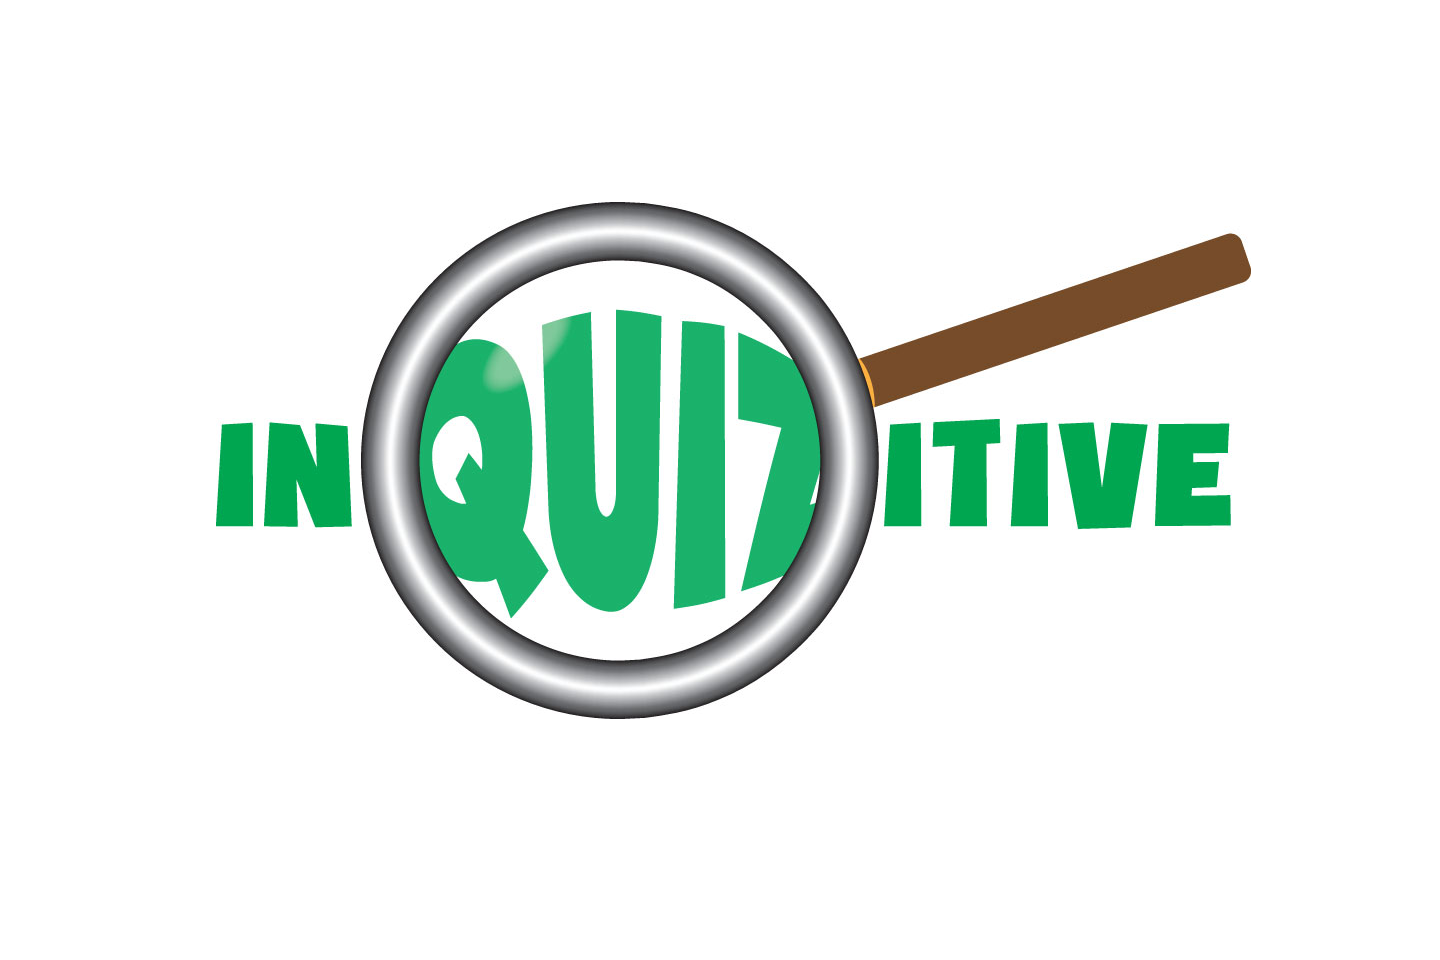 Inquizitive